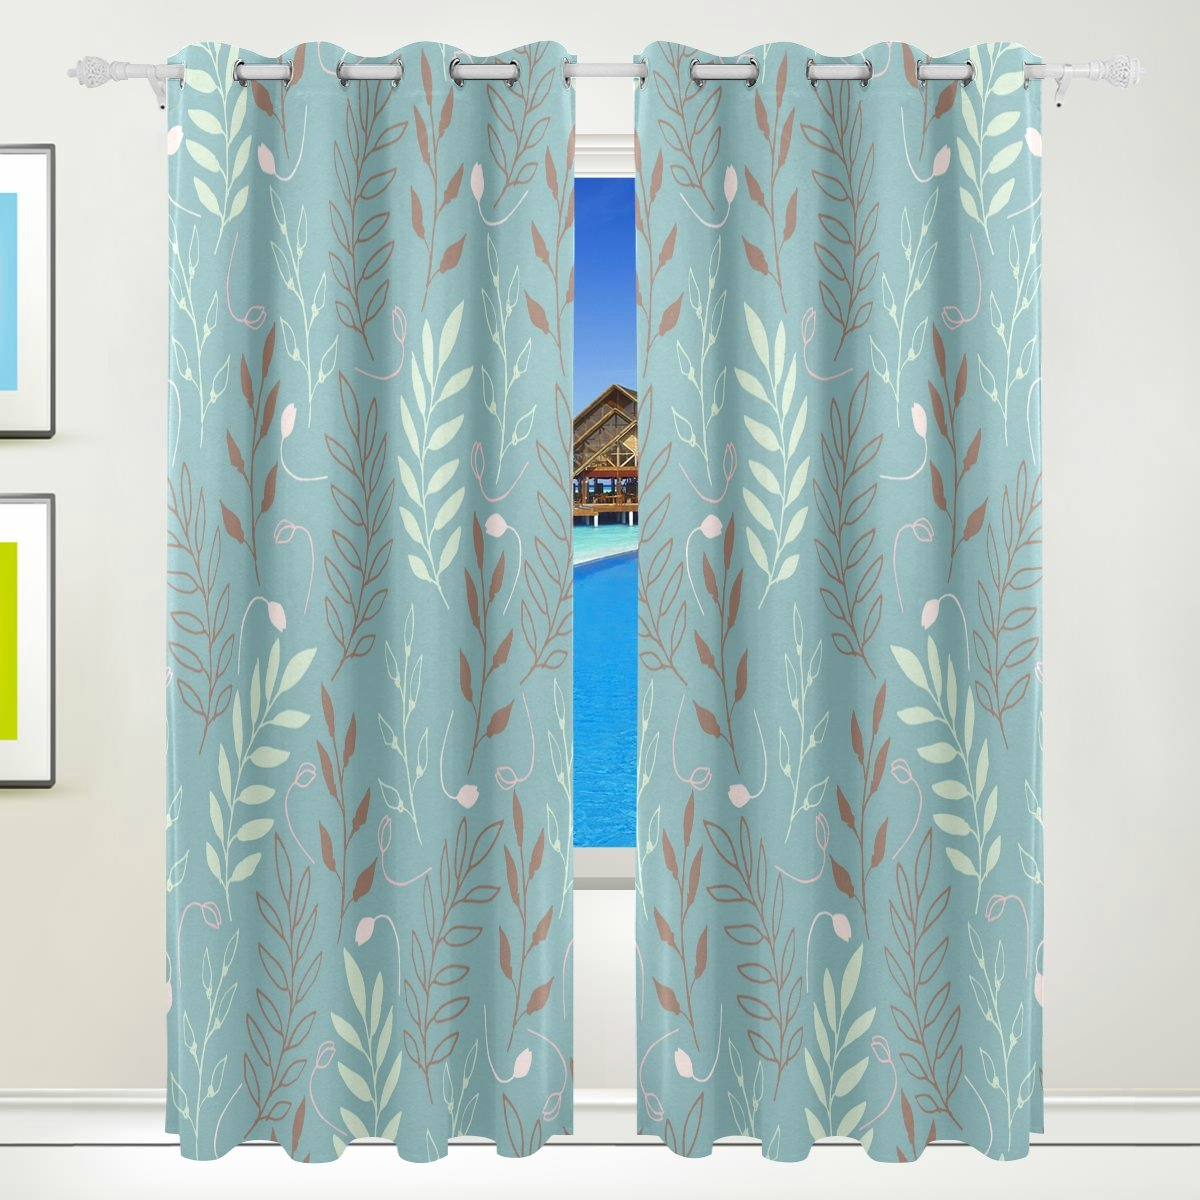 Vantaso Light Shading Window Curtains Abstract Leaves Branches Blue Polyester 2 Pannels for Kids Girls Boys Bedroom Living Room 84 inch x 55 inch